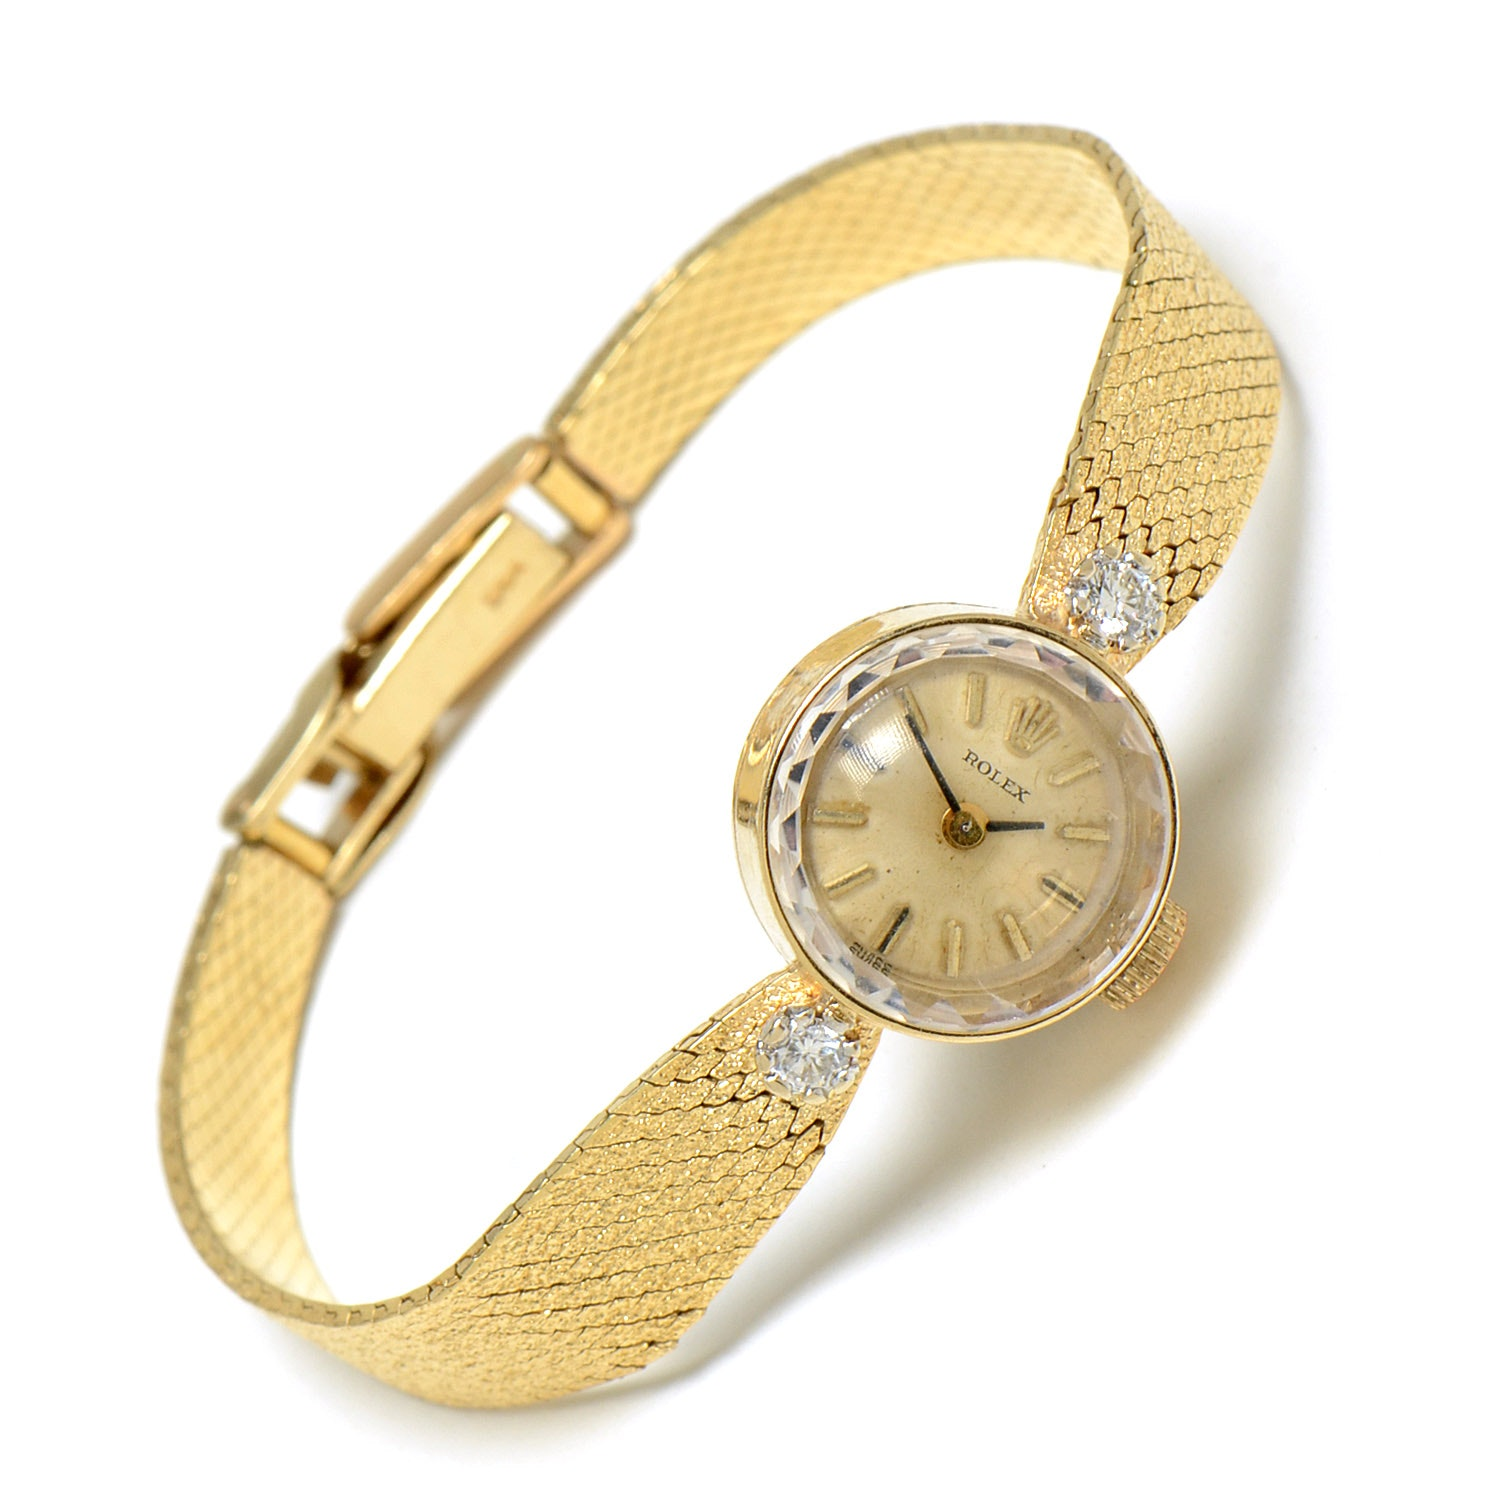 Women's 14K Yellow Gold Rolex Diamond Wristwatch